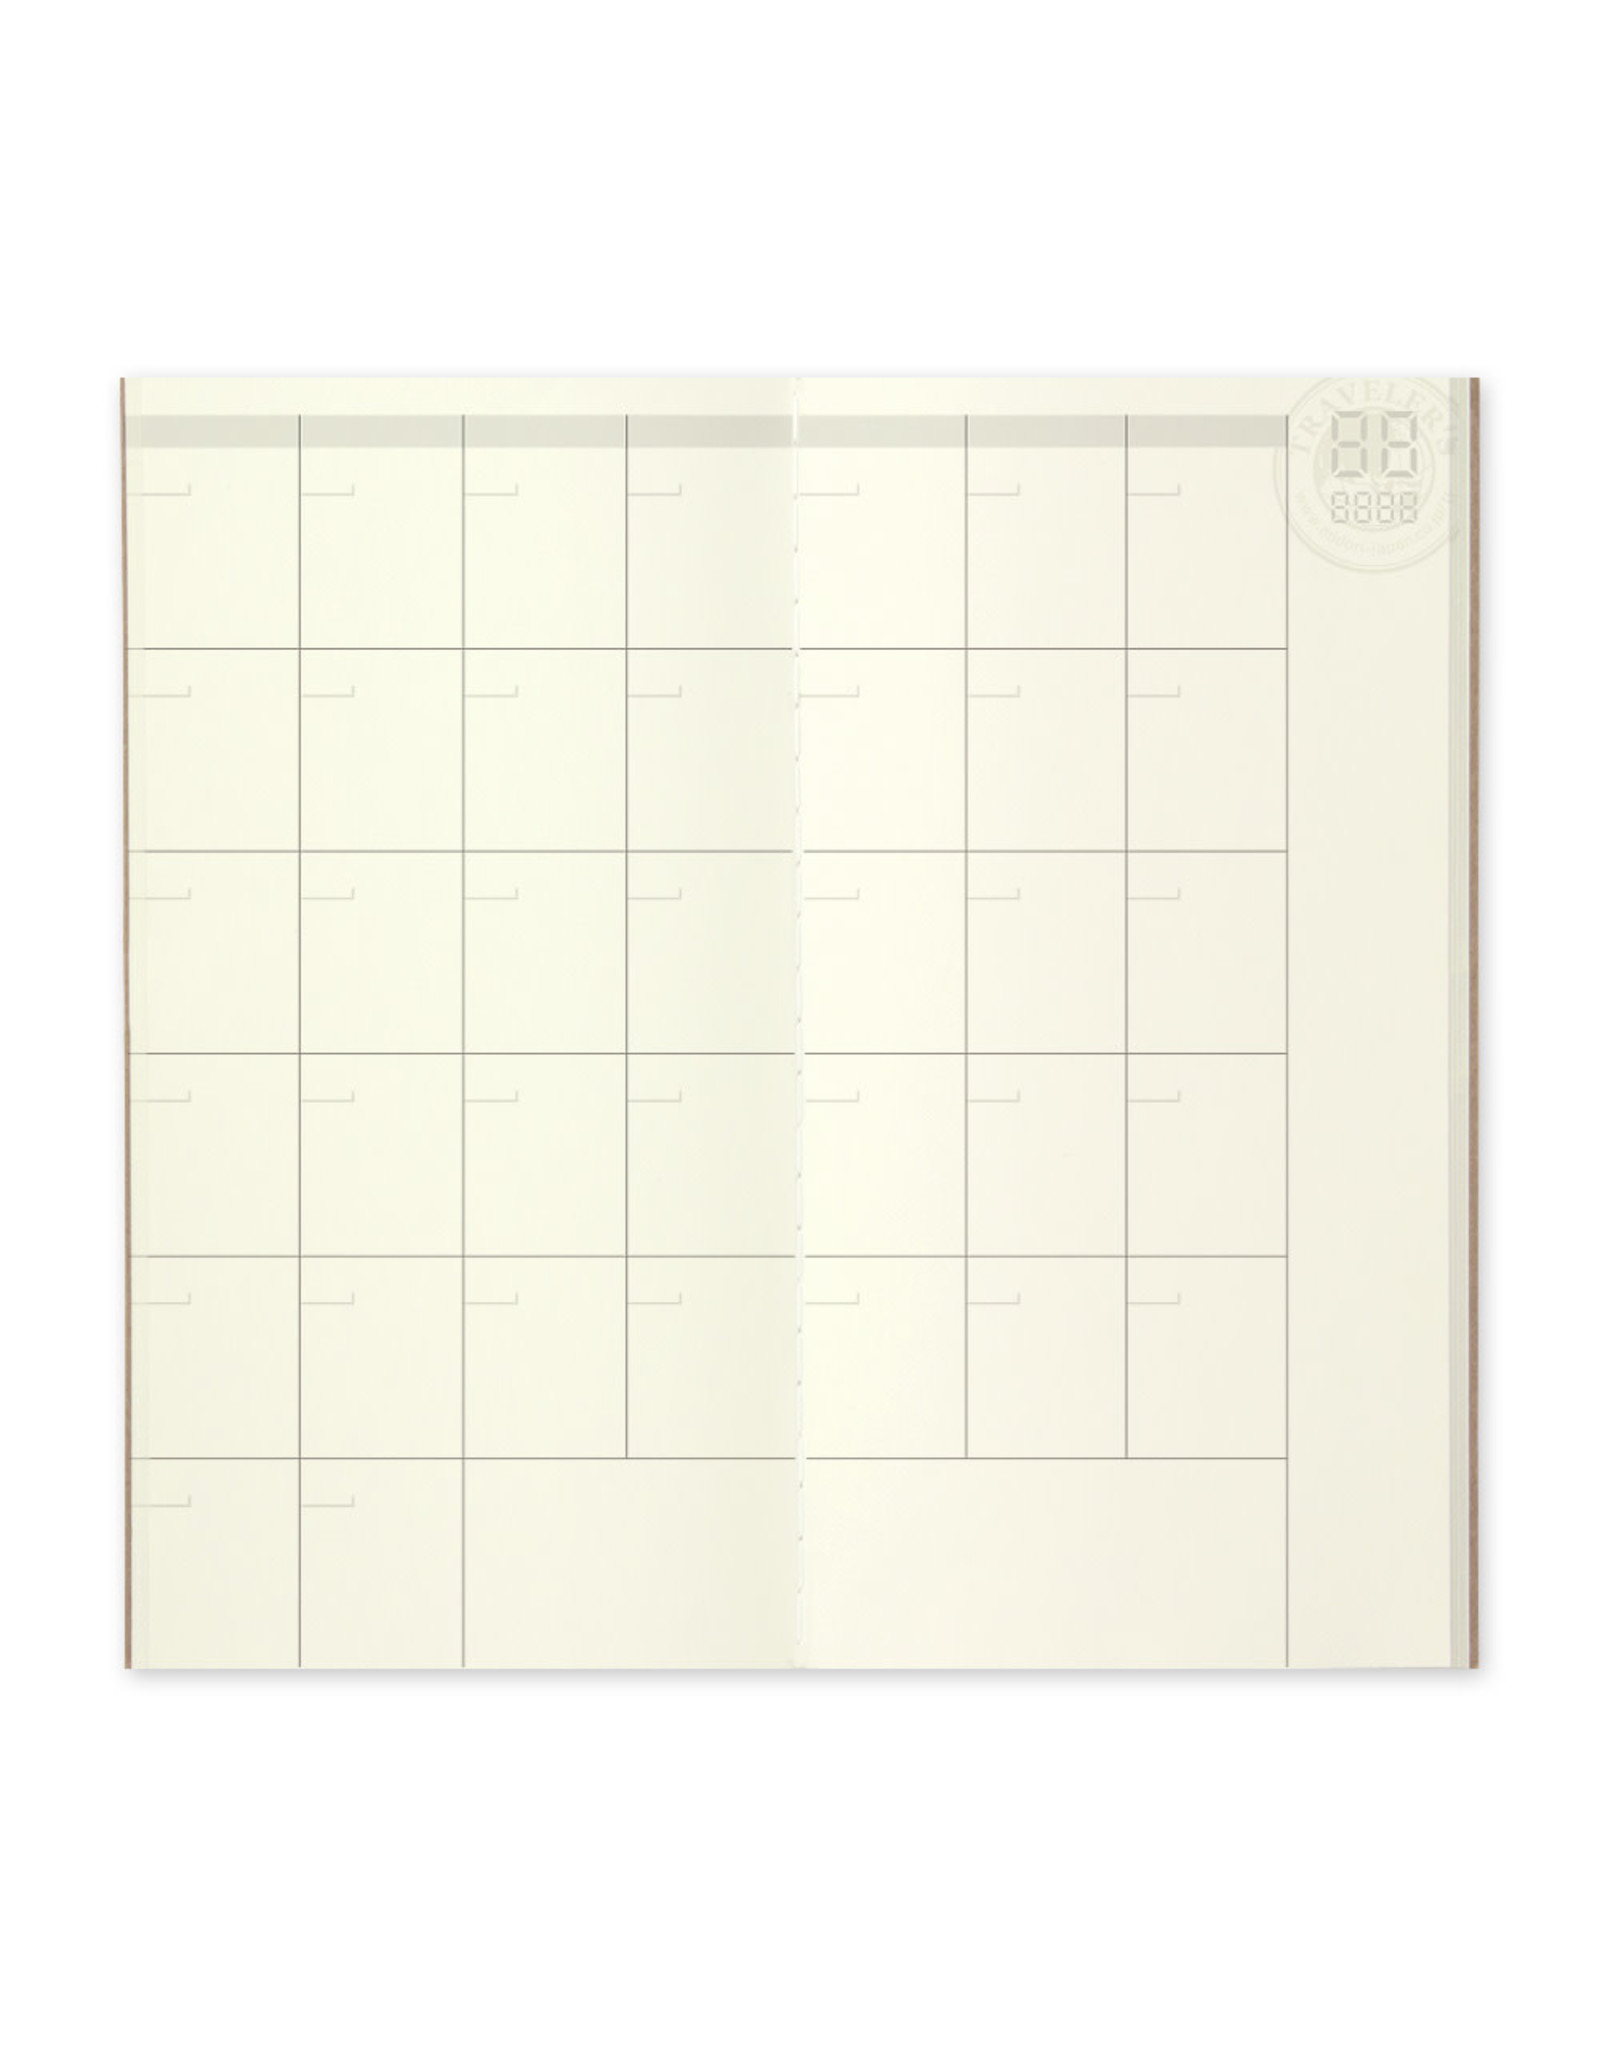 Traveler's Company 017. FREE DIARY MONTHLY MIDORI TRAVELER'S NOTEBOOK